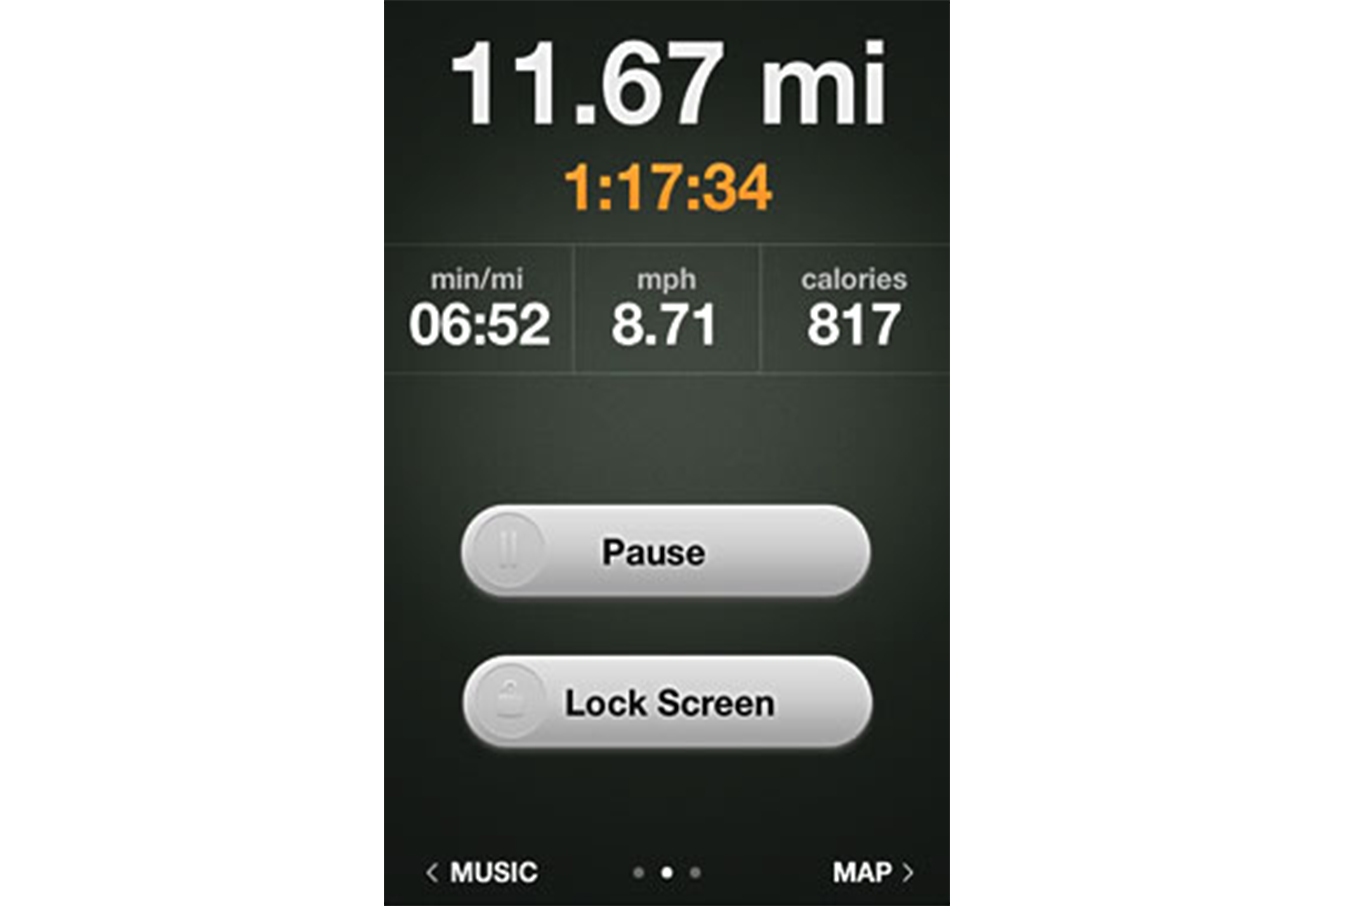 MyNetDiary Releases GPS Tracker Running/Activity App